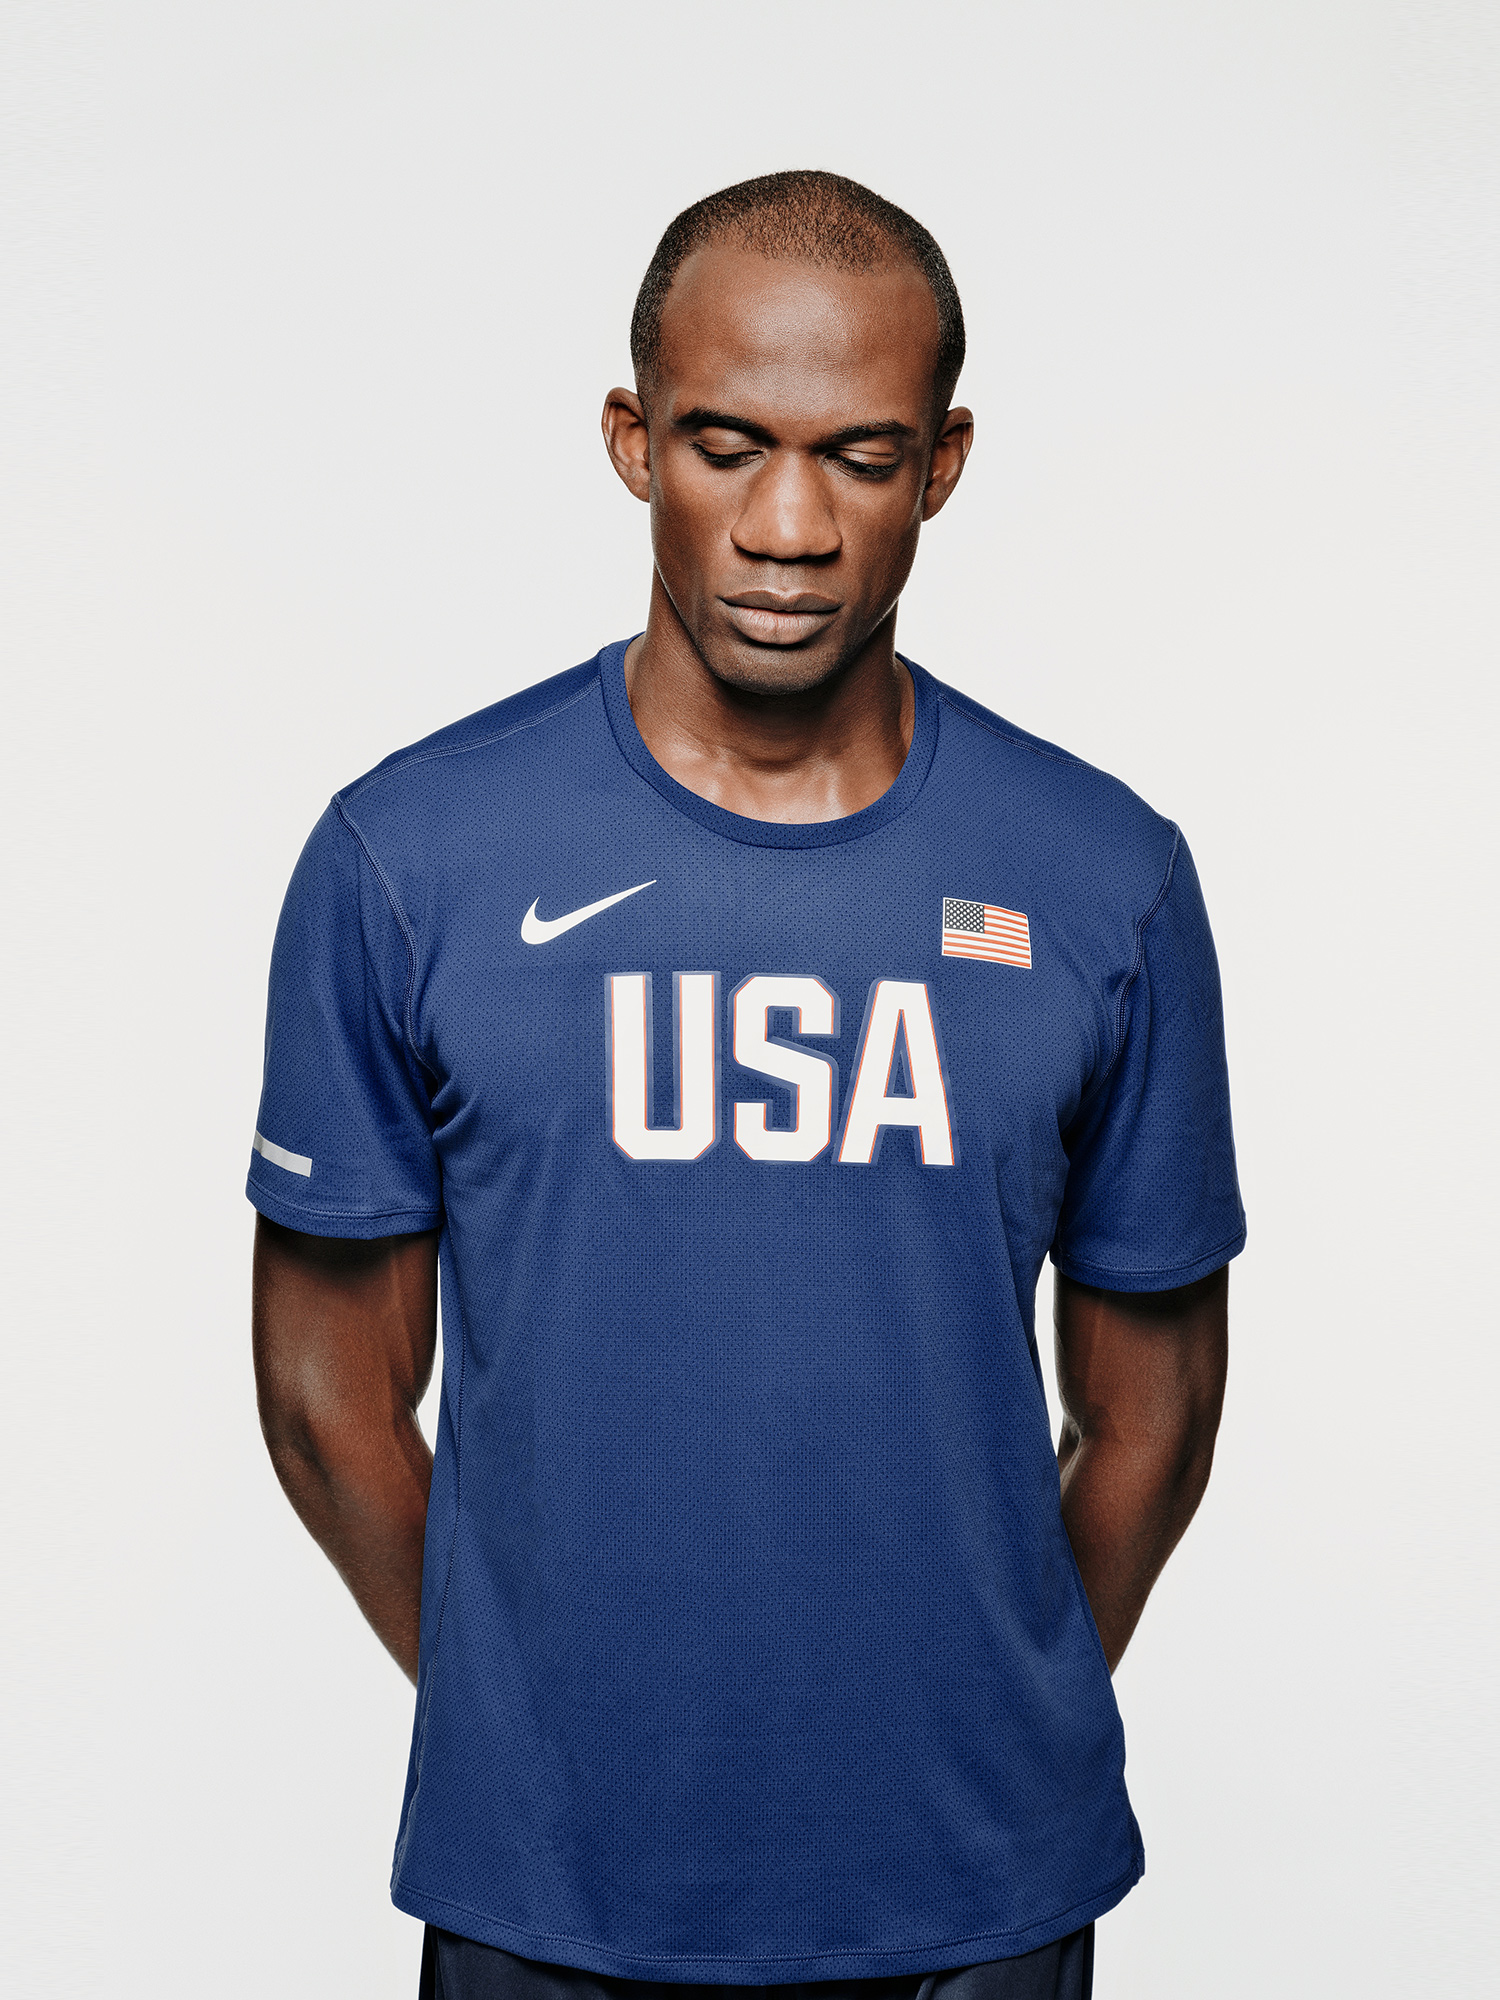 Lex Gillette, blind US Paralympic athlete, photographed for Nike, by Houston commercial photographer, Todd Spoth.